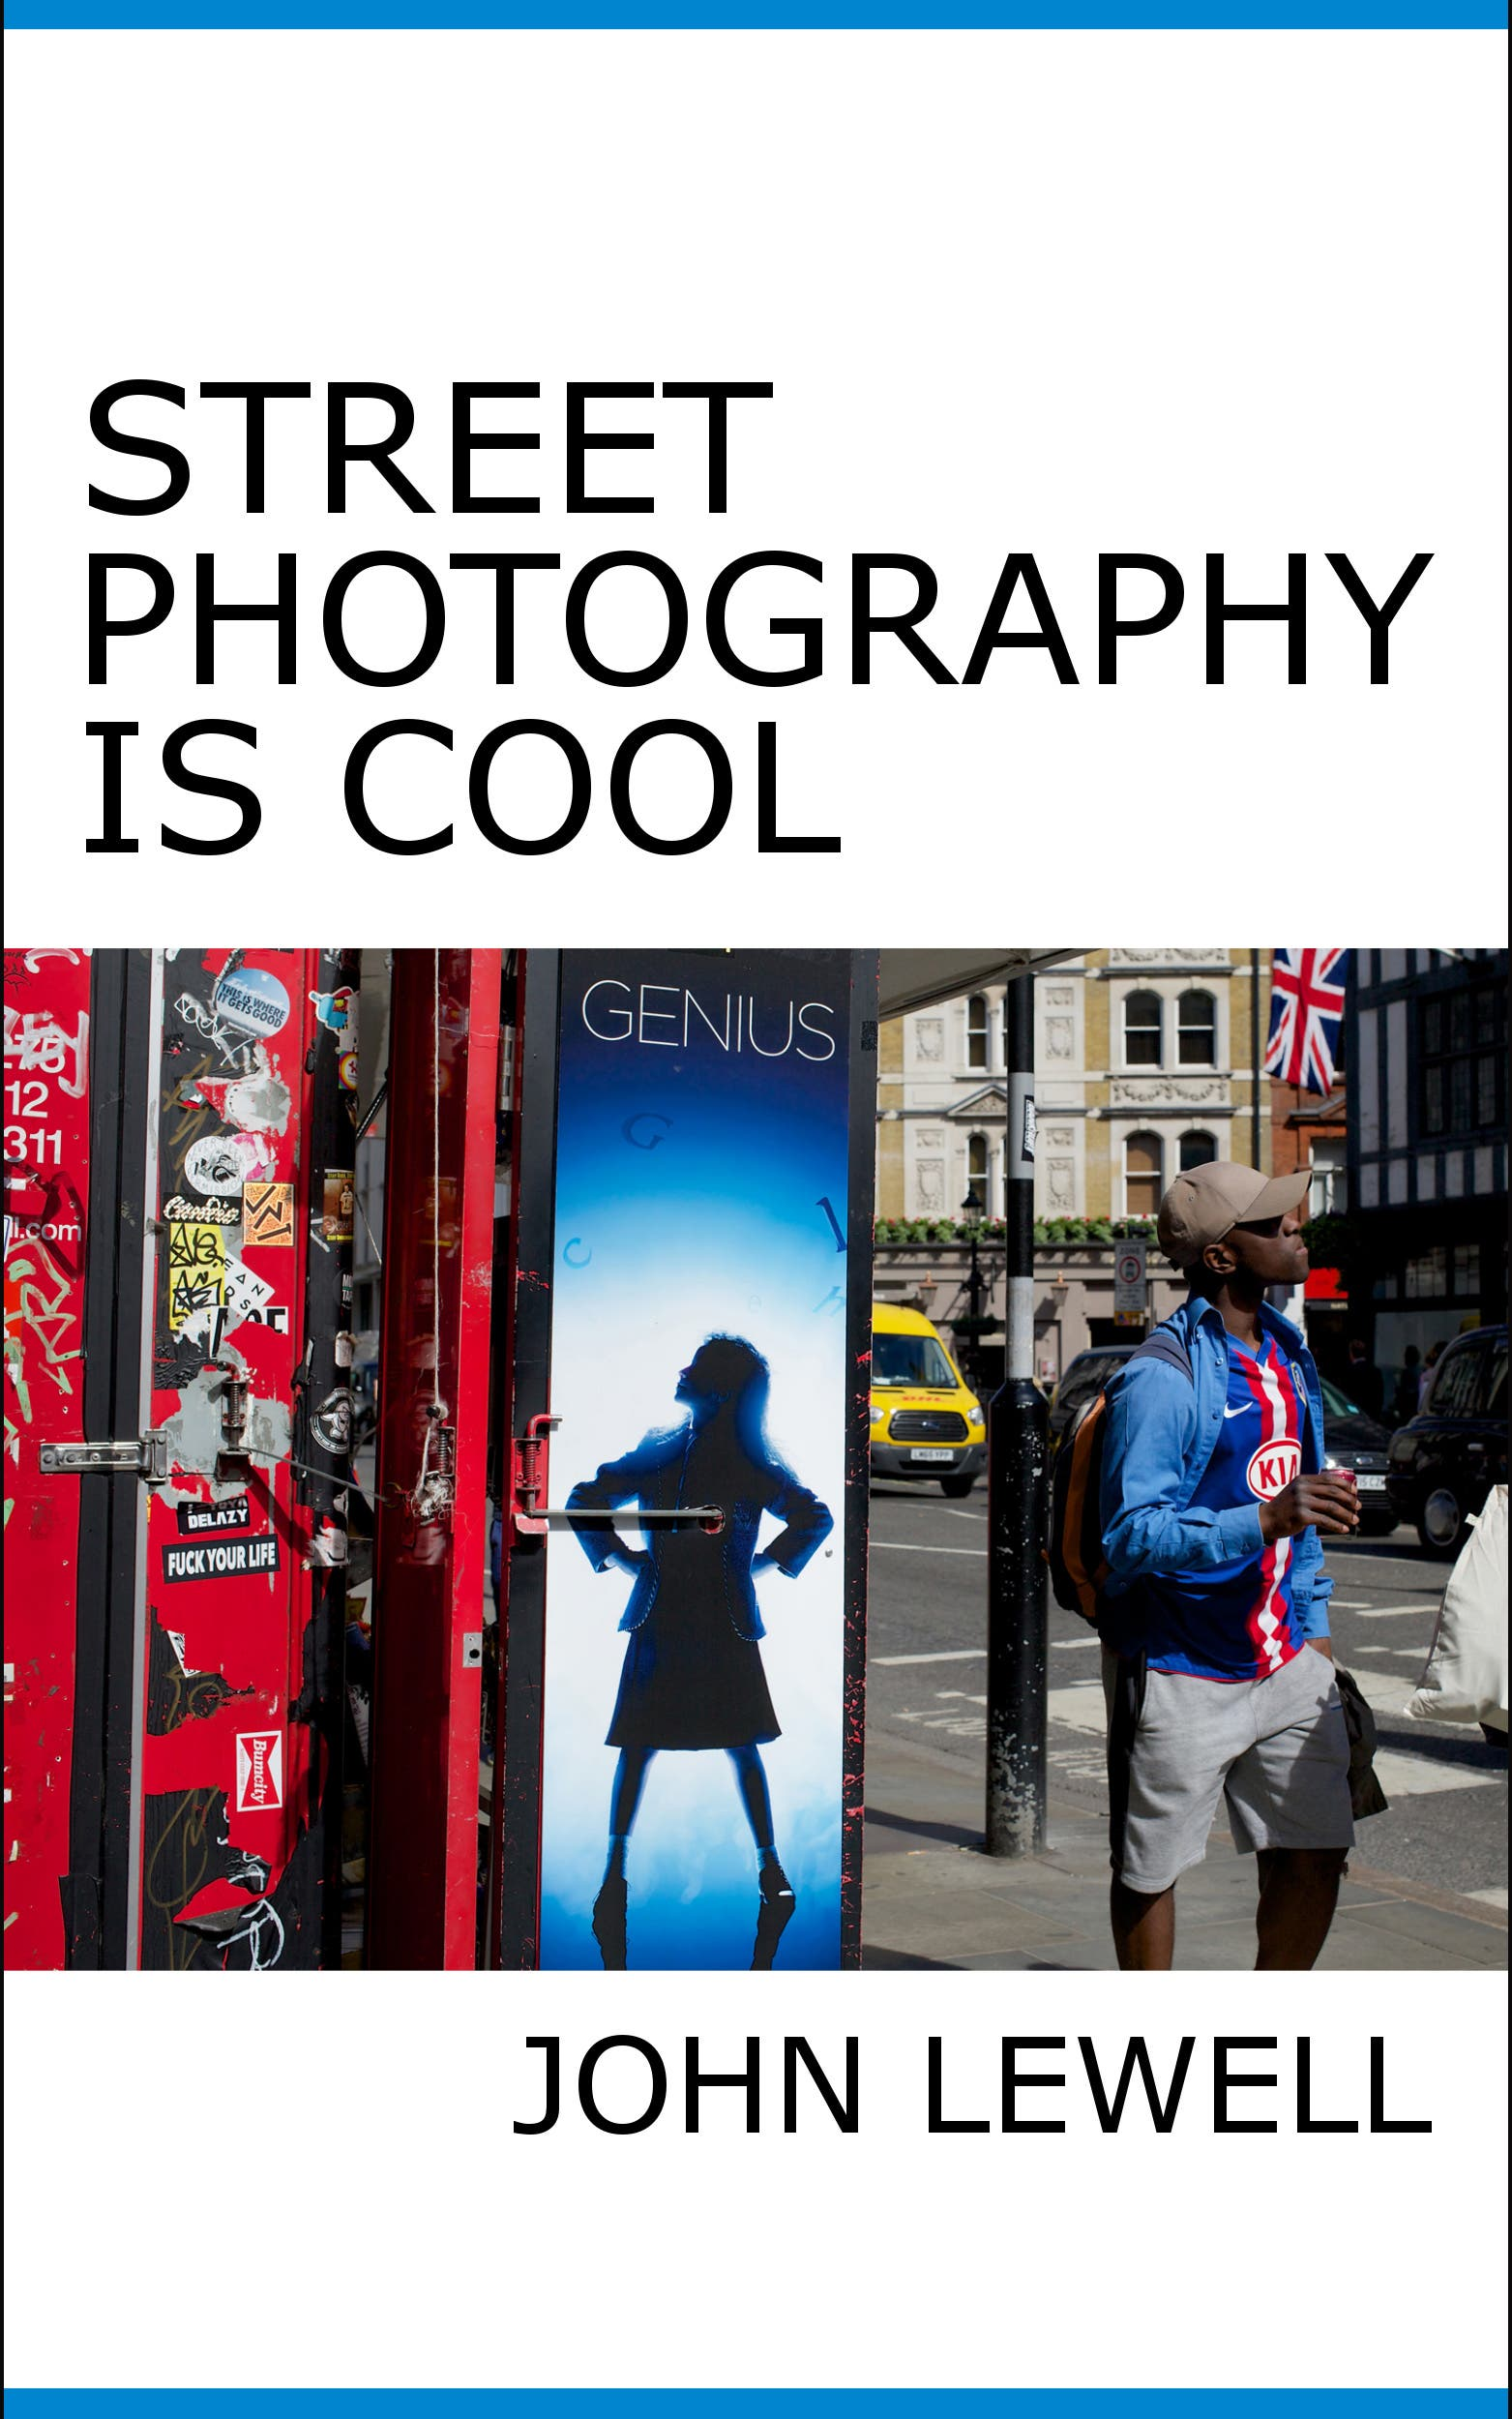 """John Lewell's """"Street Photography is Cool"""" Is a Deep Dive into the Art"""